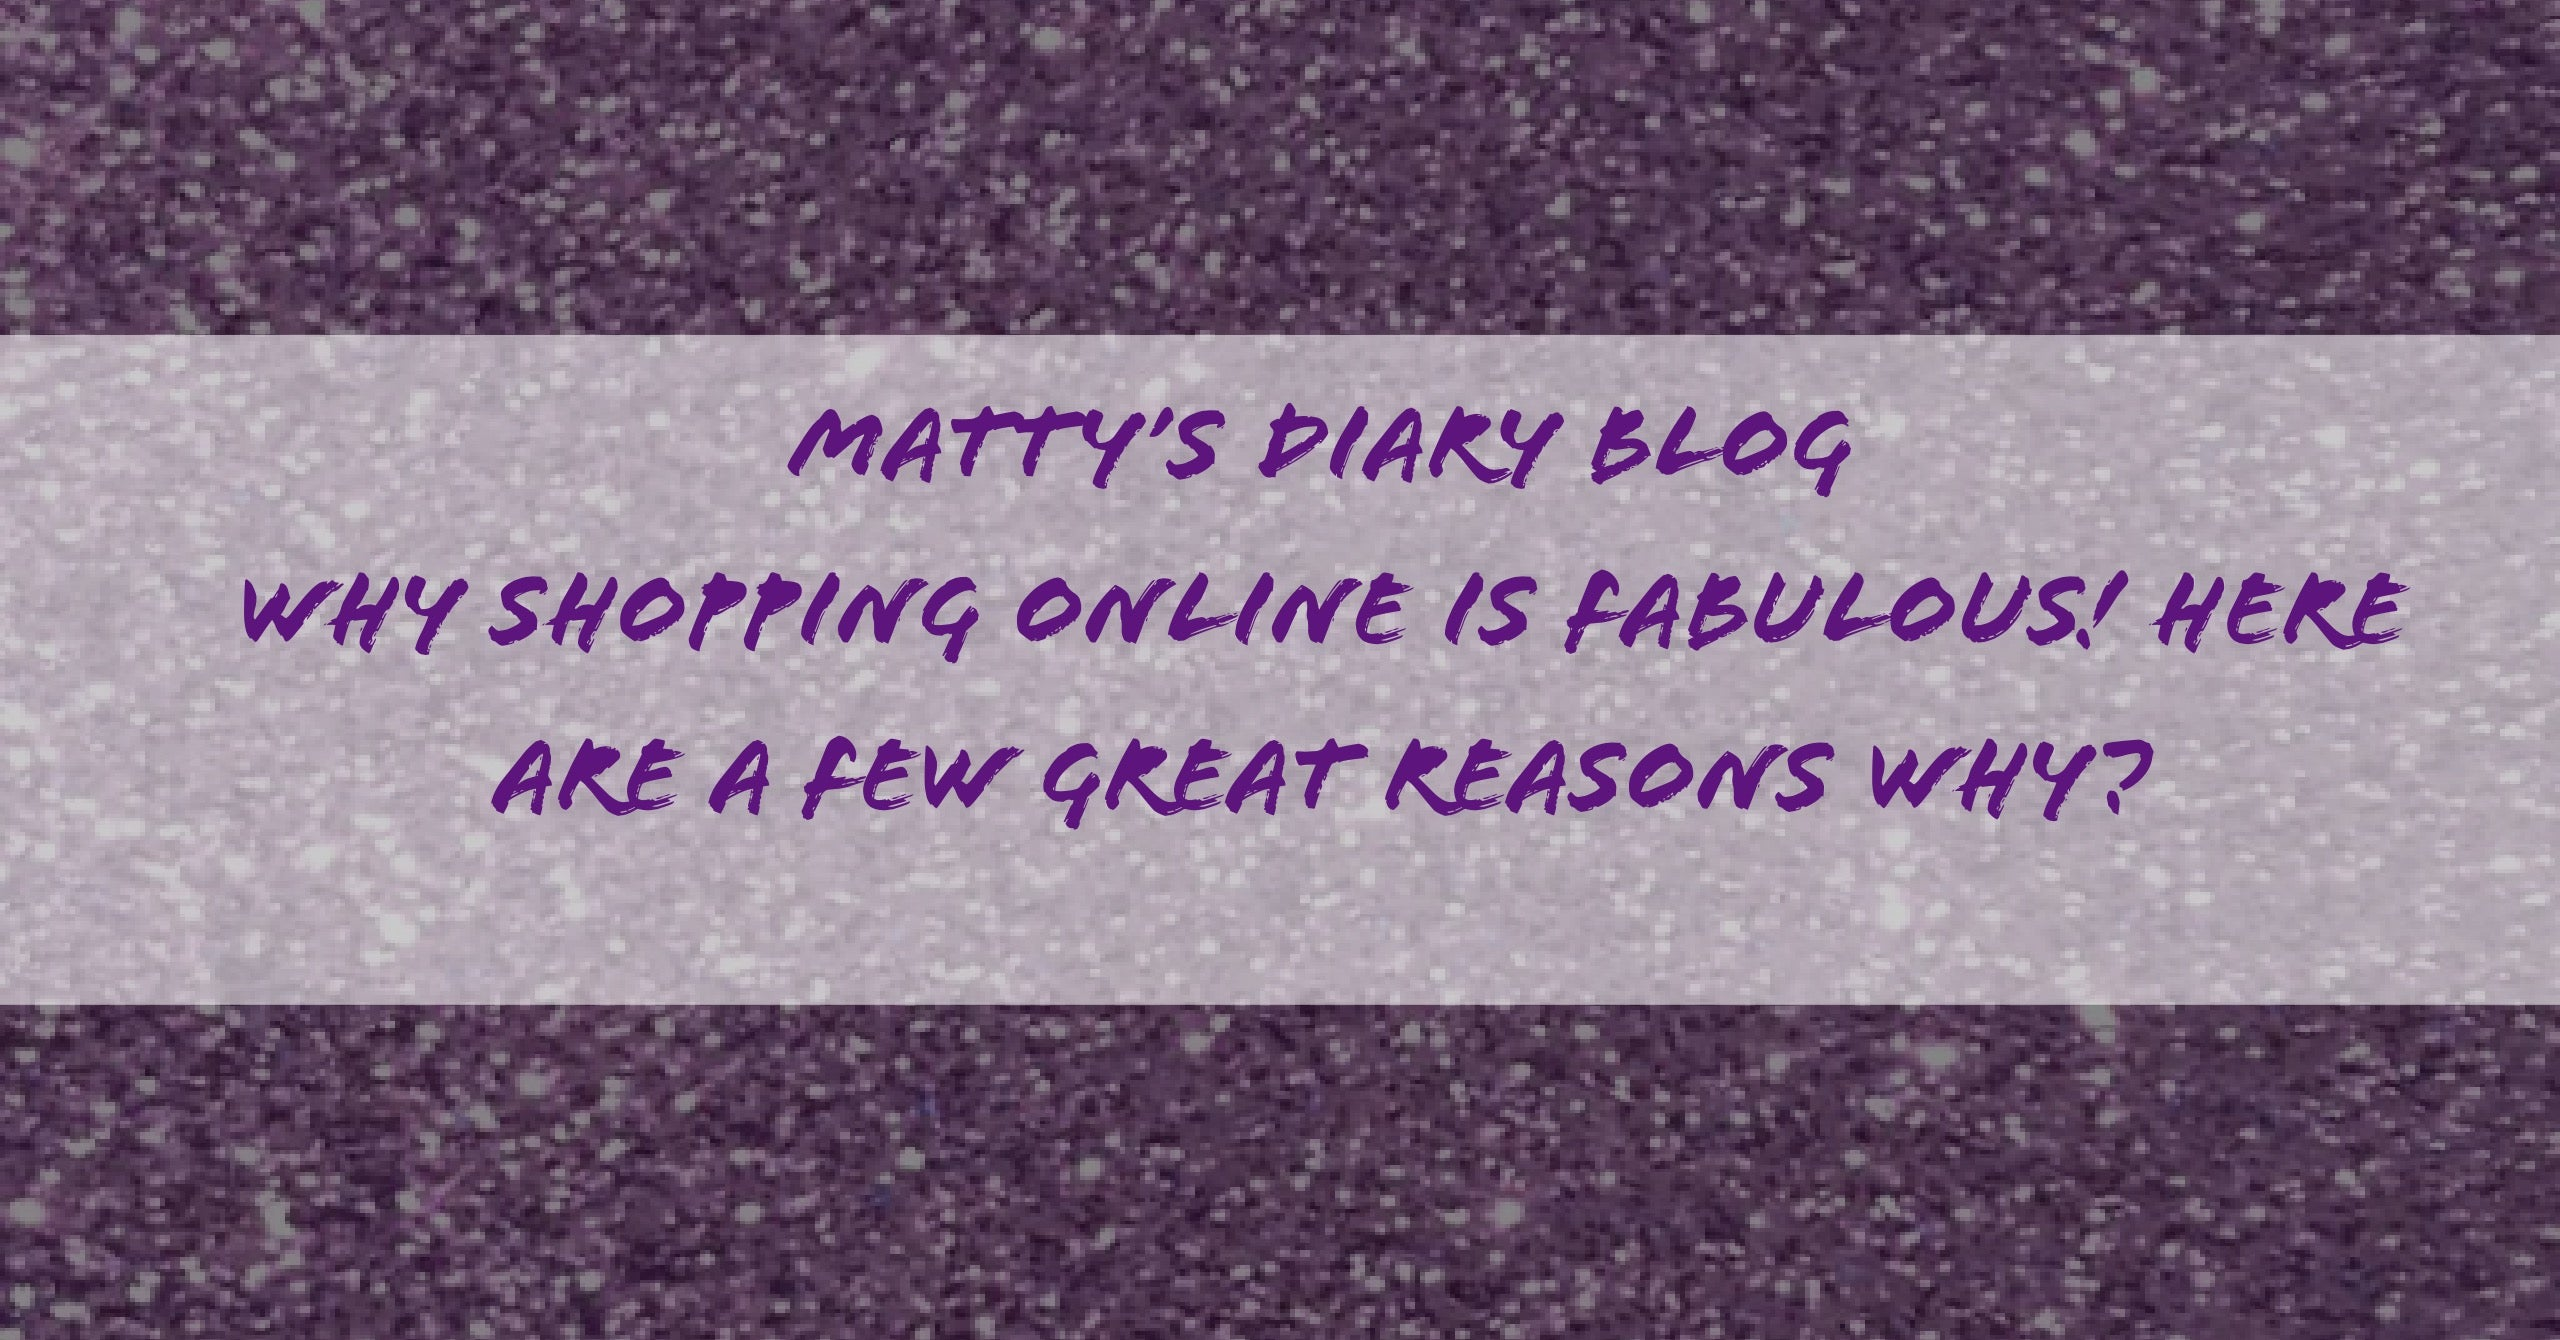 Why Shopping online is fabulous! Here are a few great reasons why?